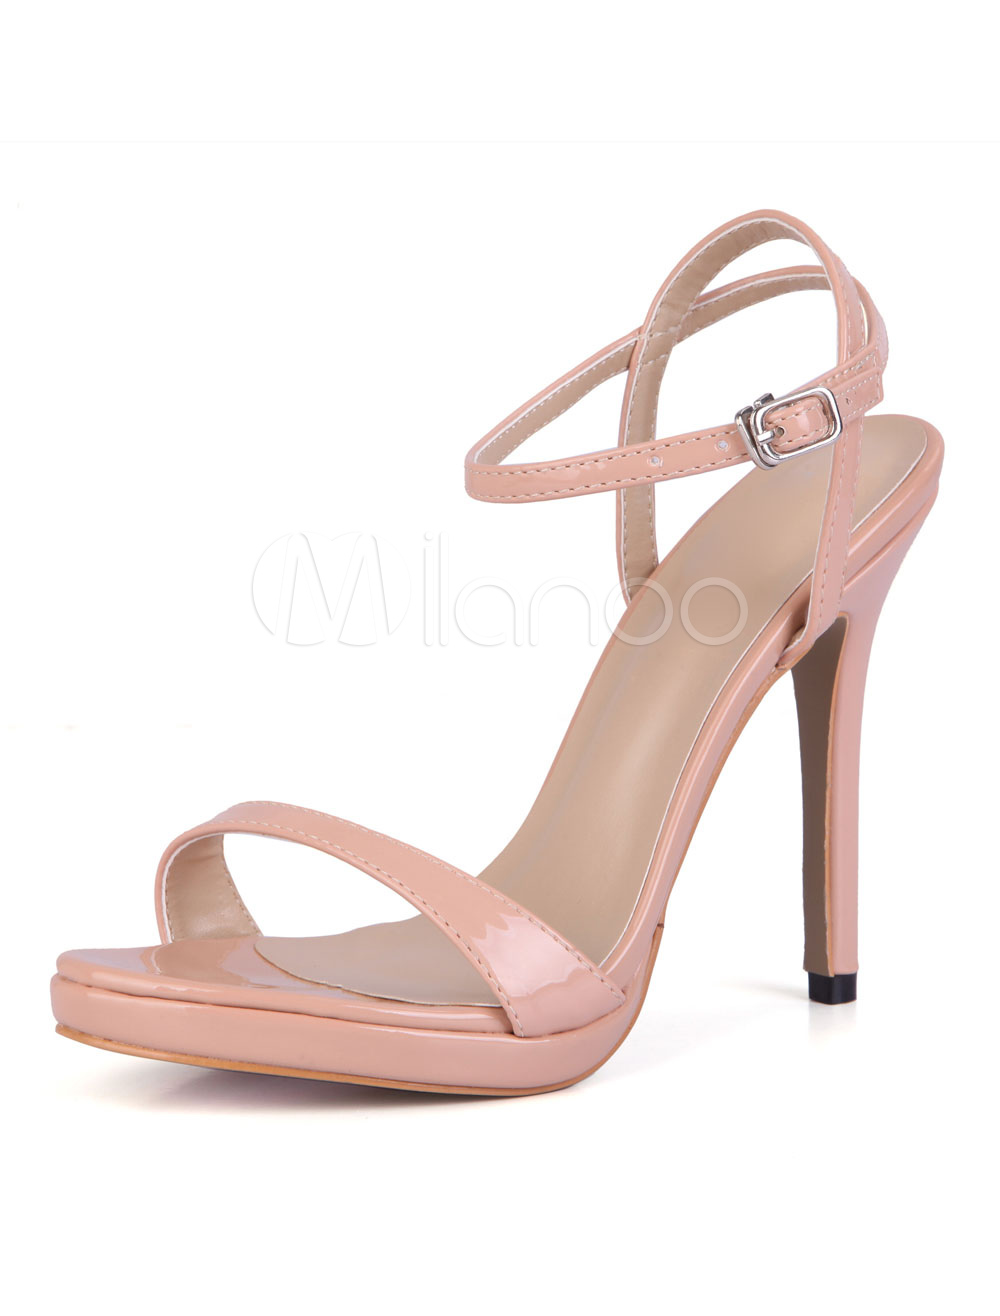 Women Sandal Shoes High Heel Open Toe Stiletto Ankle Strap Salmon Leather Sandals